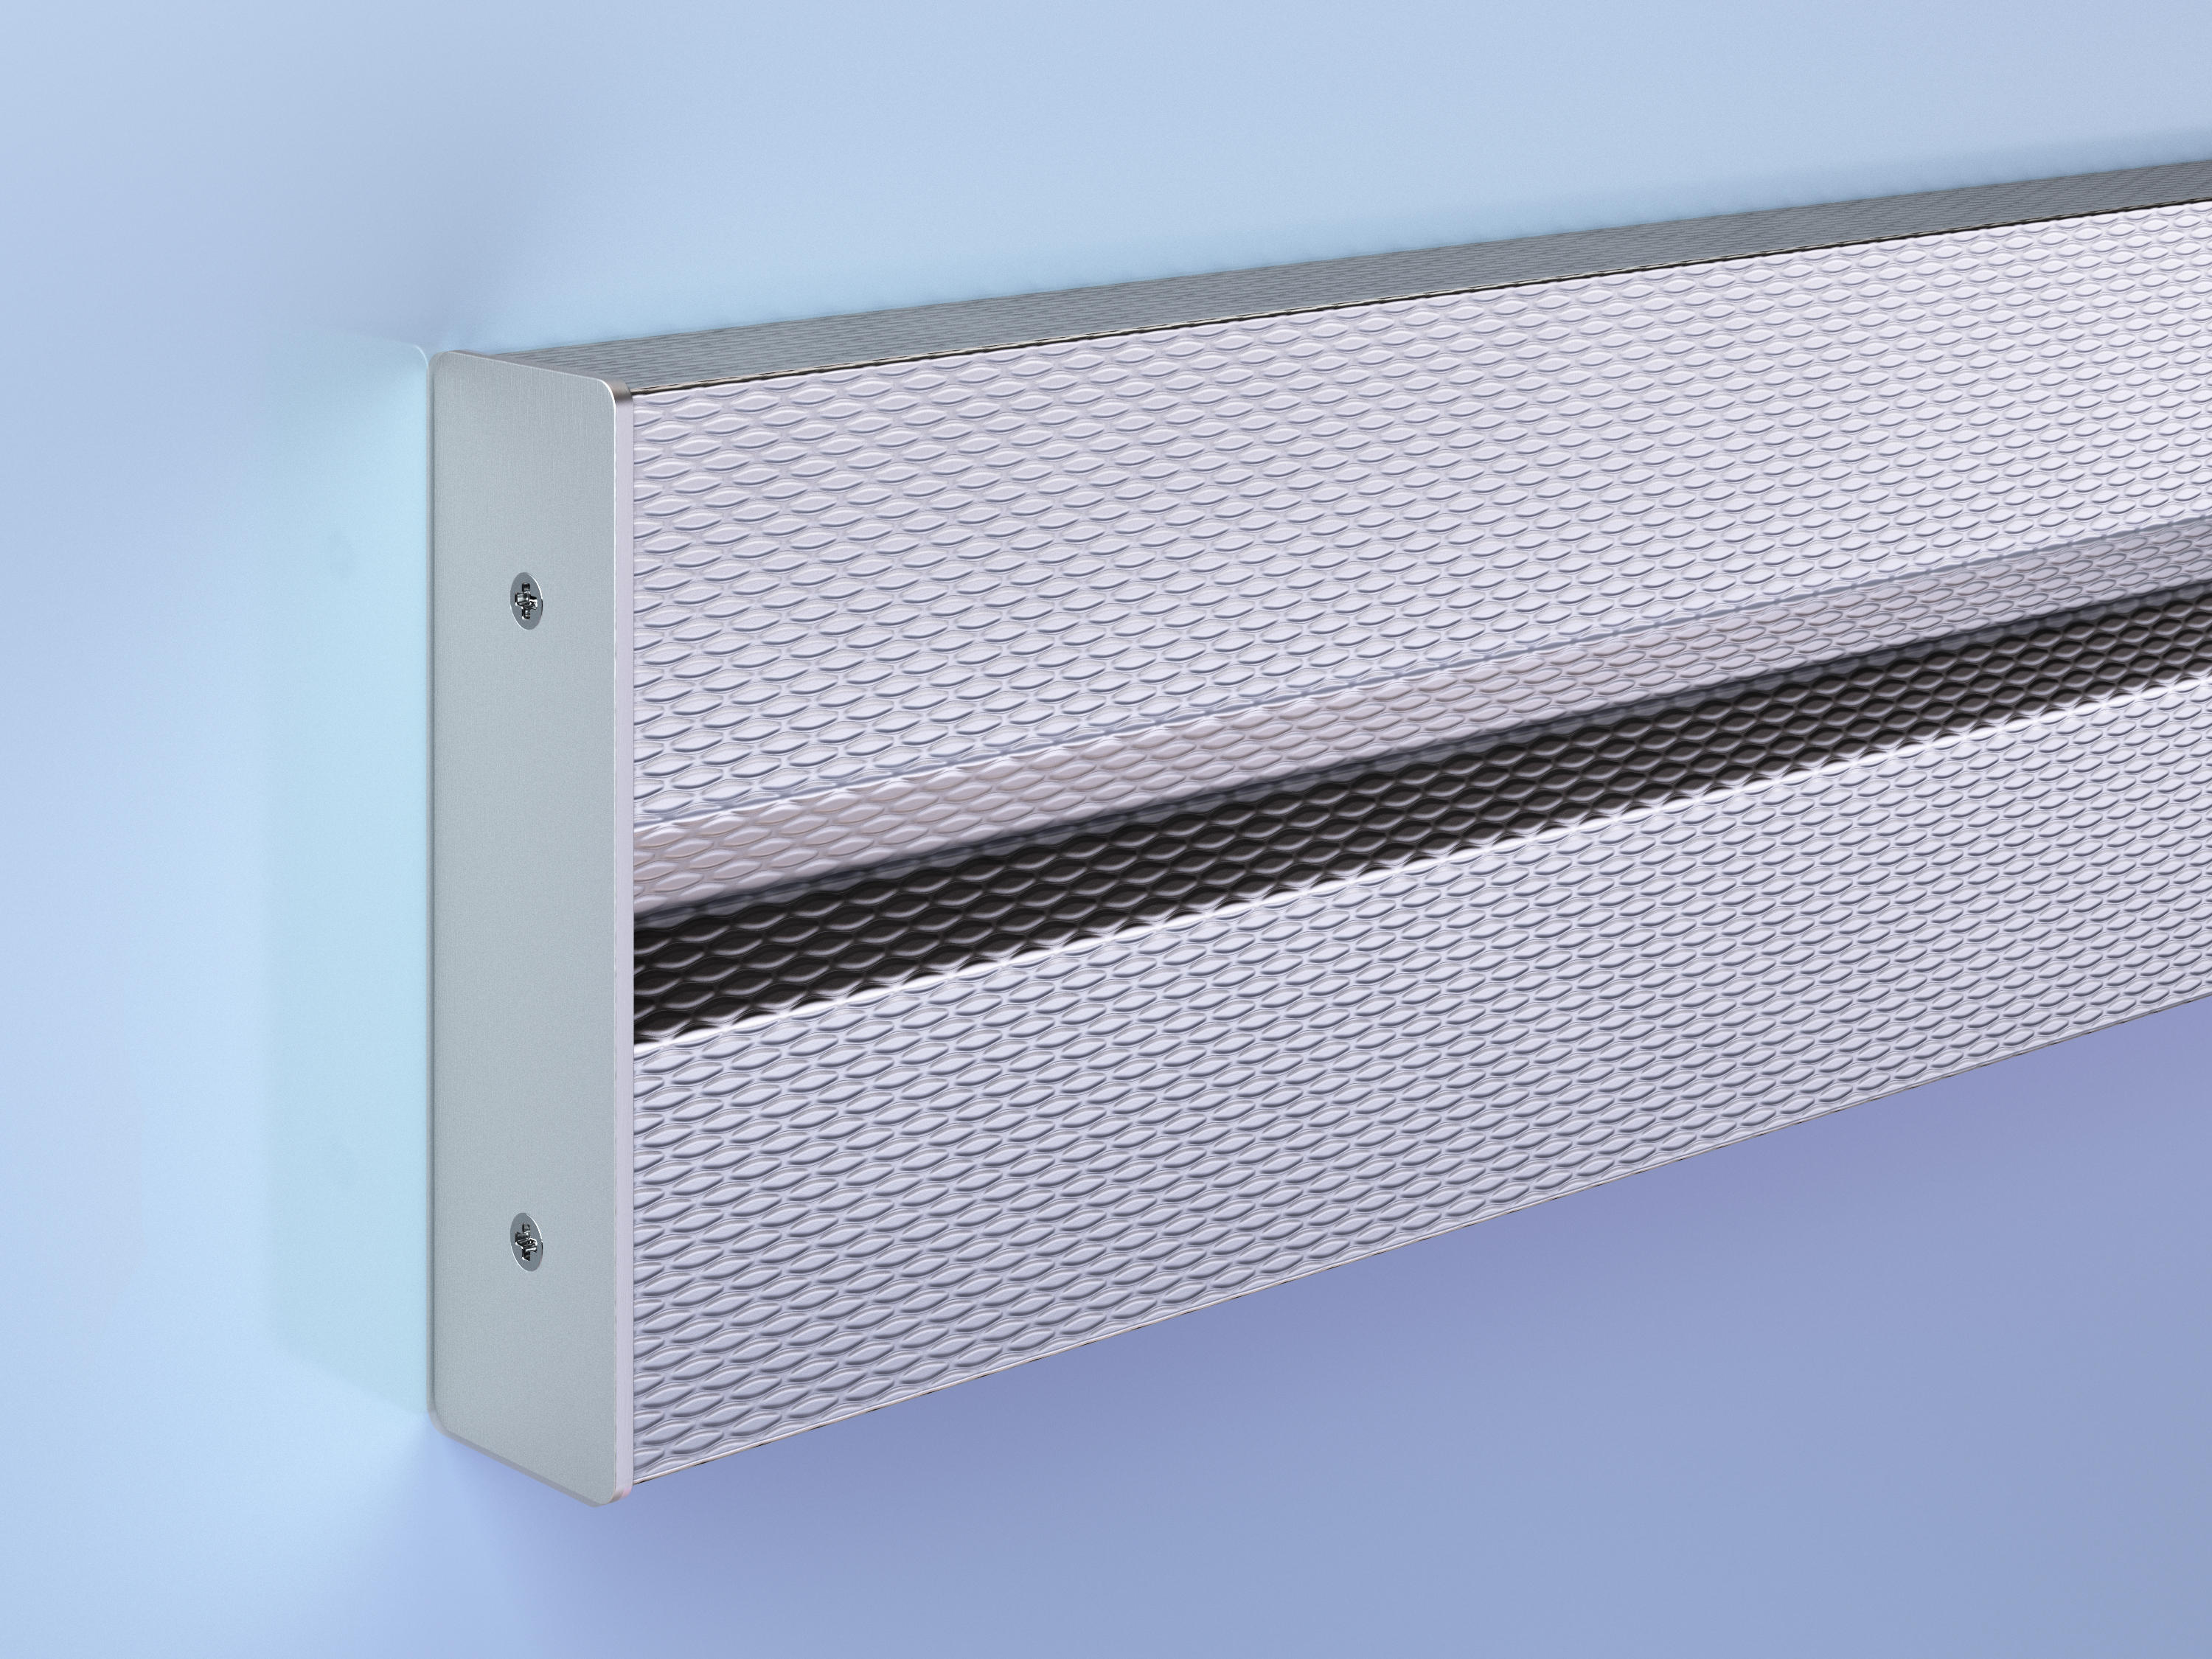 Patterned Stainless Steel Crash Rail